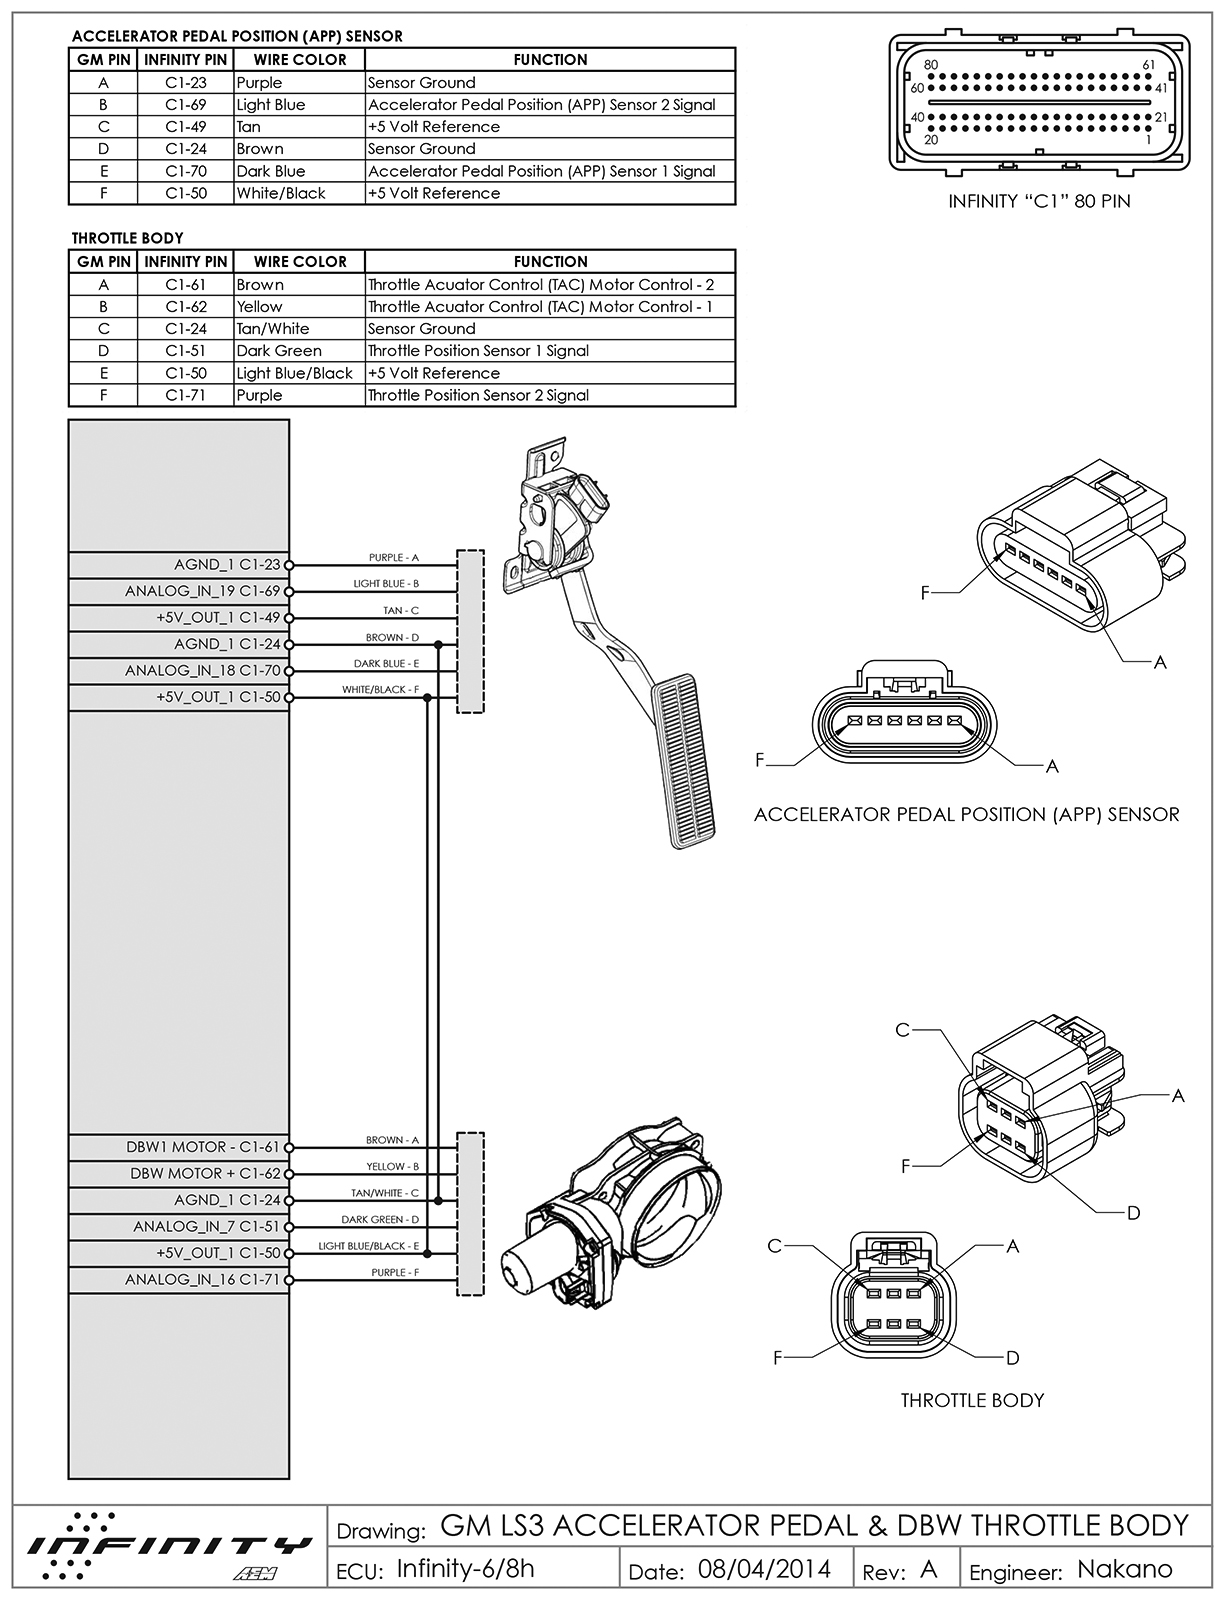 1999 holden vectra wiring diagram for lucas ignition switch aem infinity 6 and nissan 350z vq35de dbw |